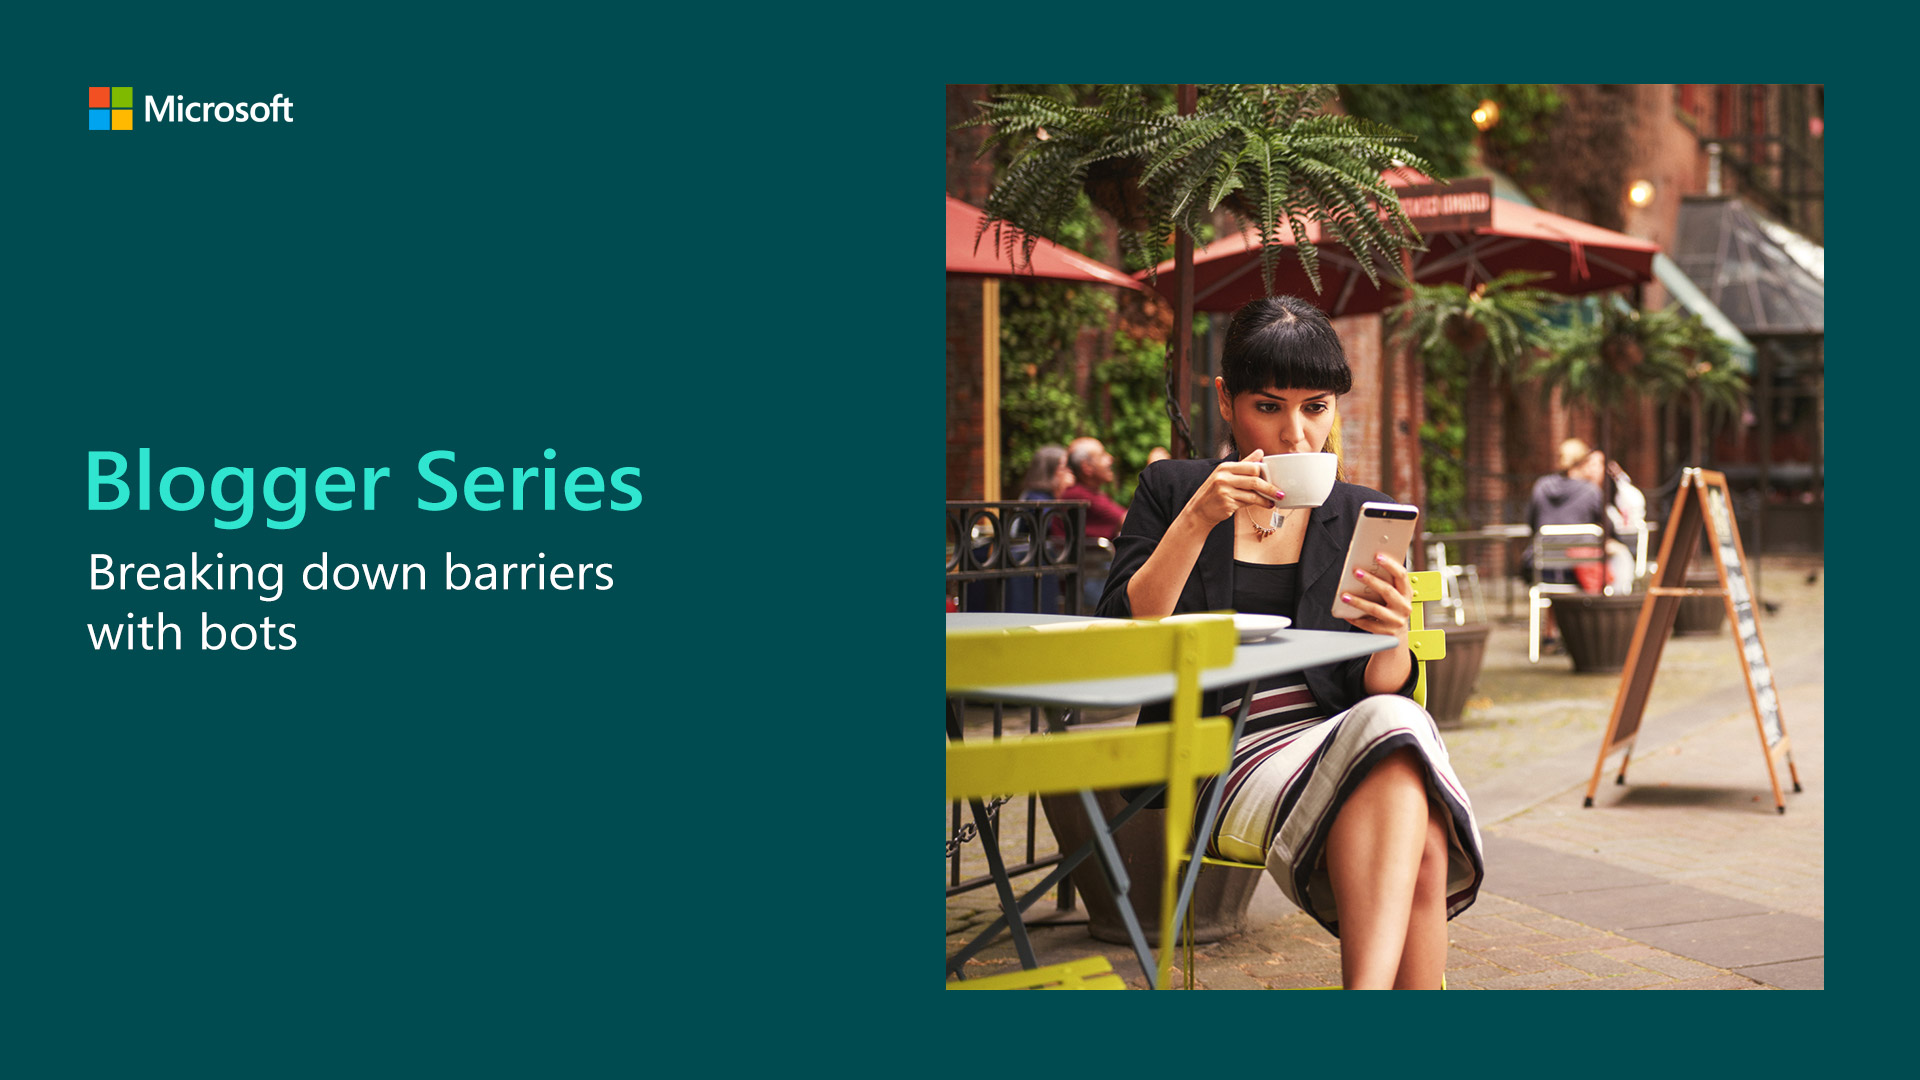 Microsoft Blogger Series banner showing woman on her phone whilst drinking coffee